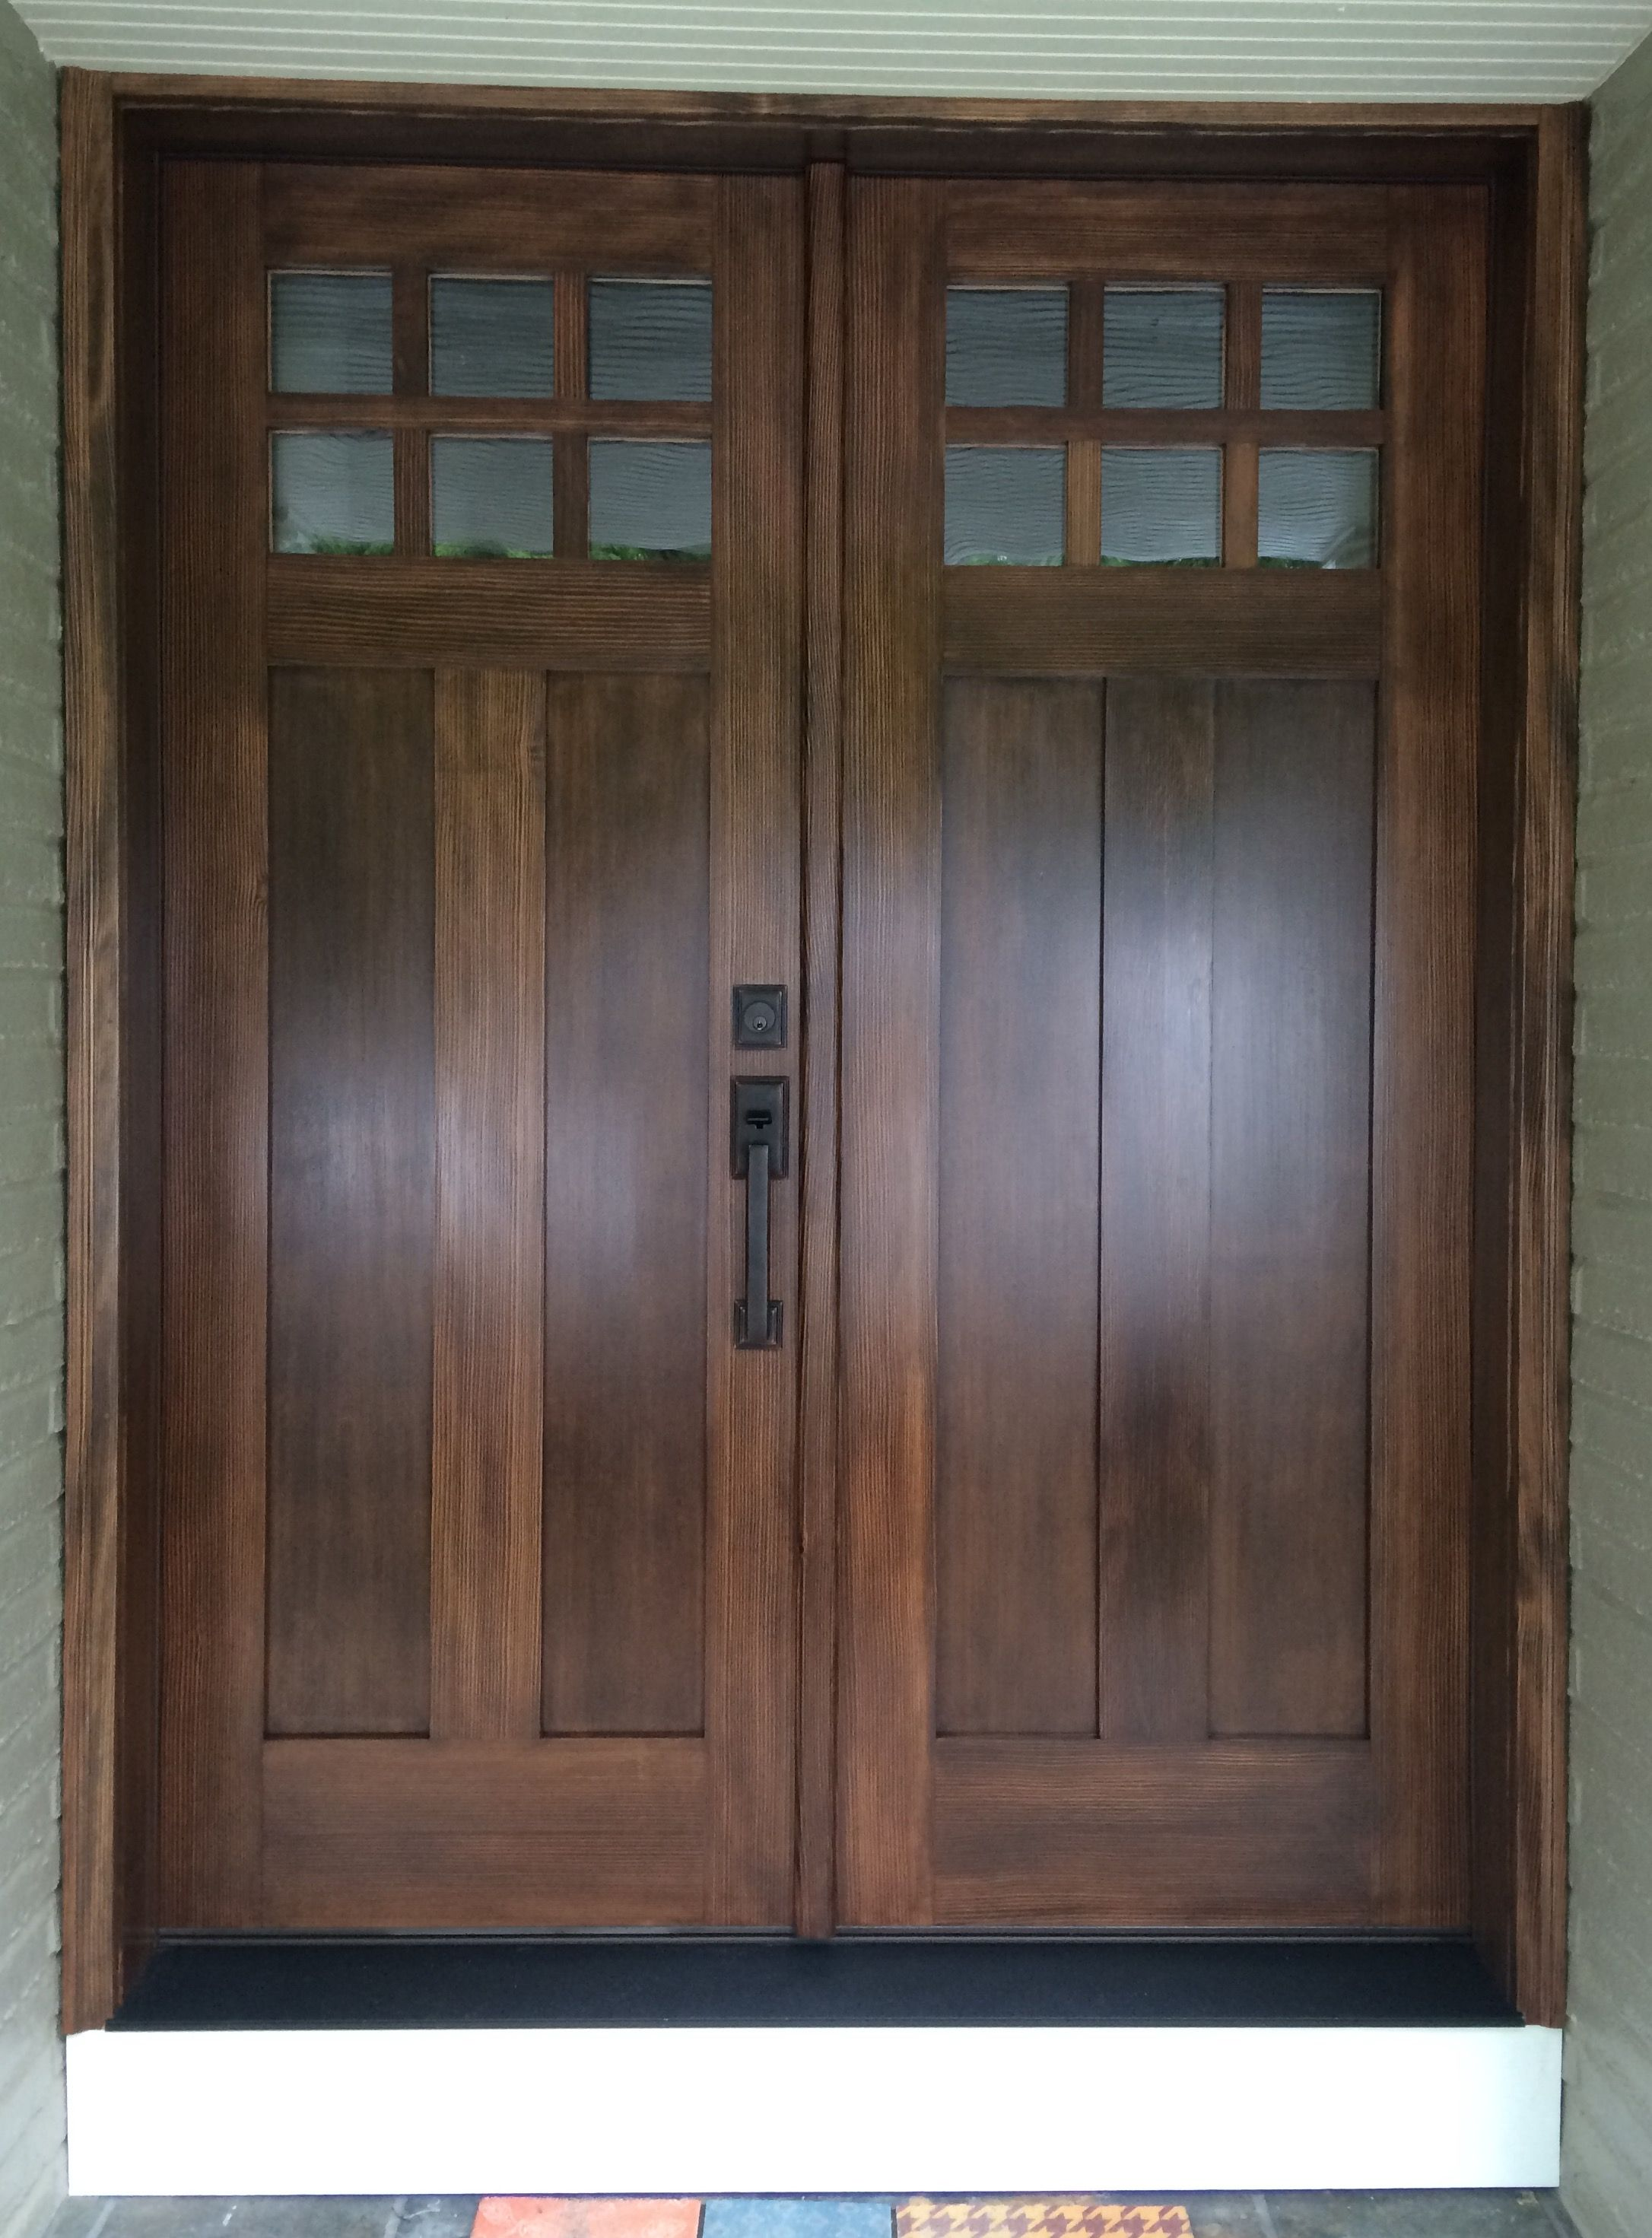 Douglas fir entry door stained and finished Exterior Doors